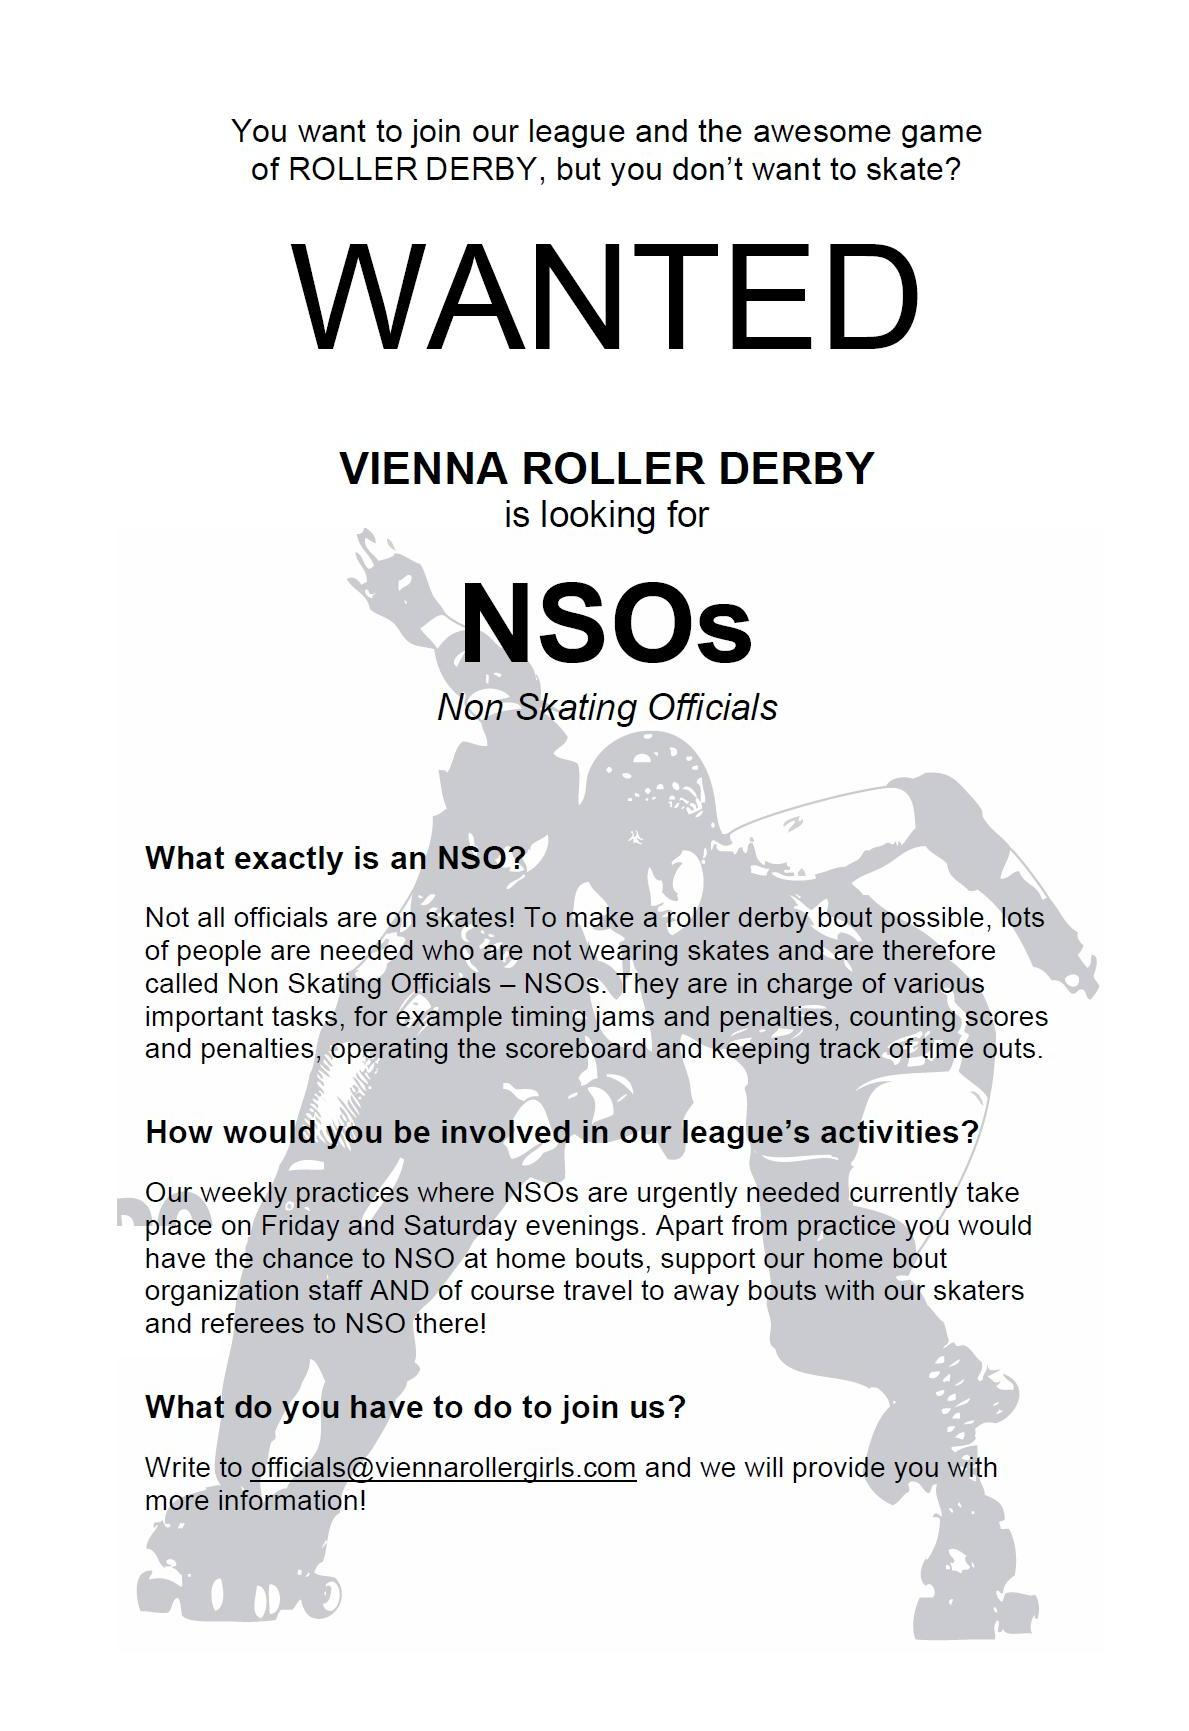 VRD looking for NSOs